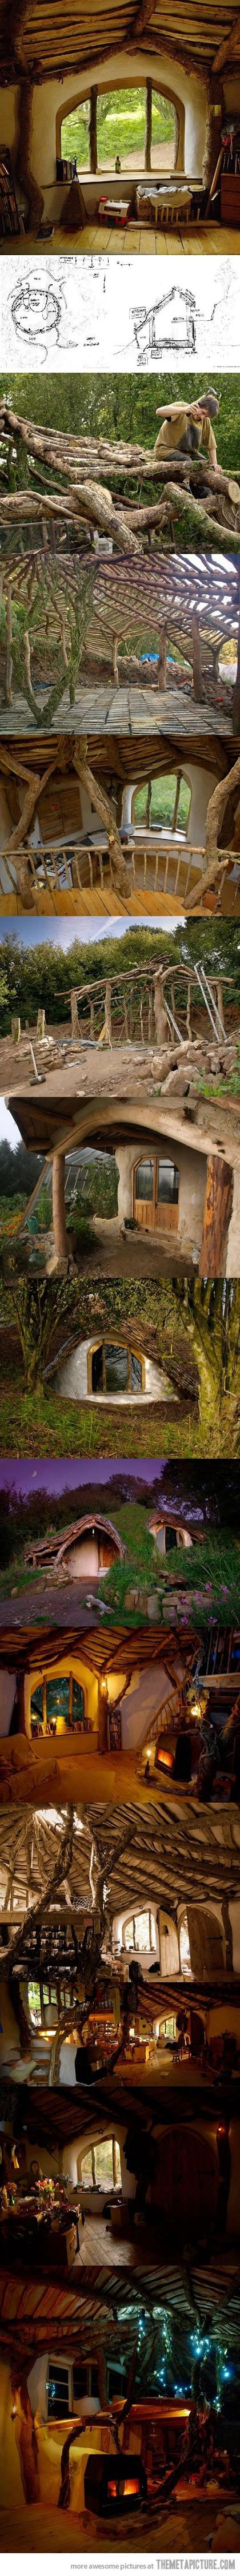 299 best earth bag strawbale cob homes such images on pinterest 299 best earth bag strawbale cob homes such images on pinterest cob houses permaculture and small houses fandeluxe Gallery